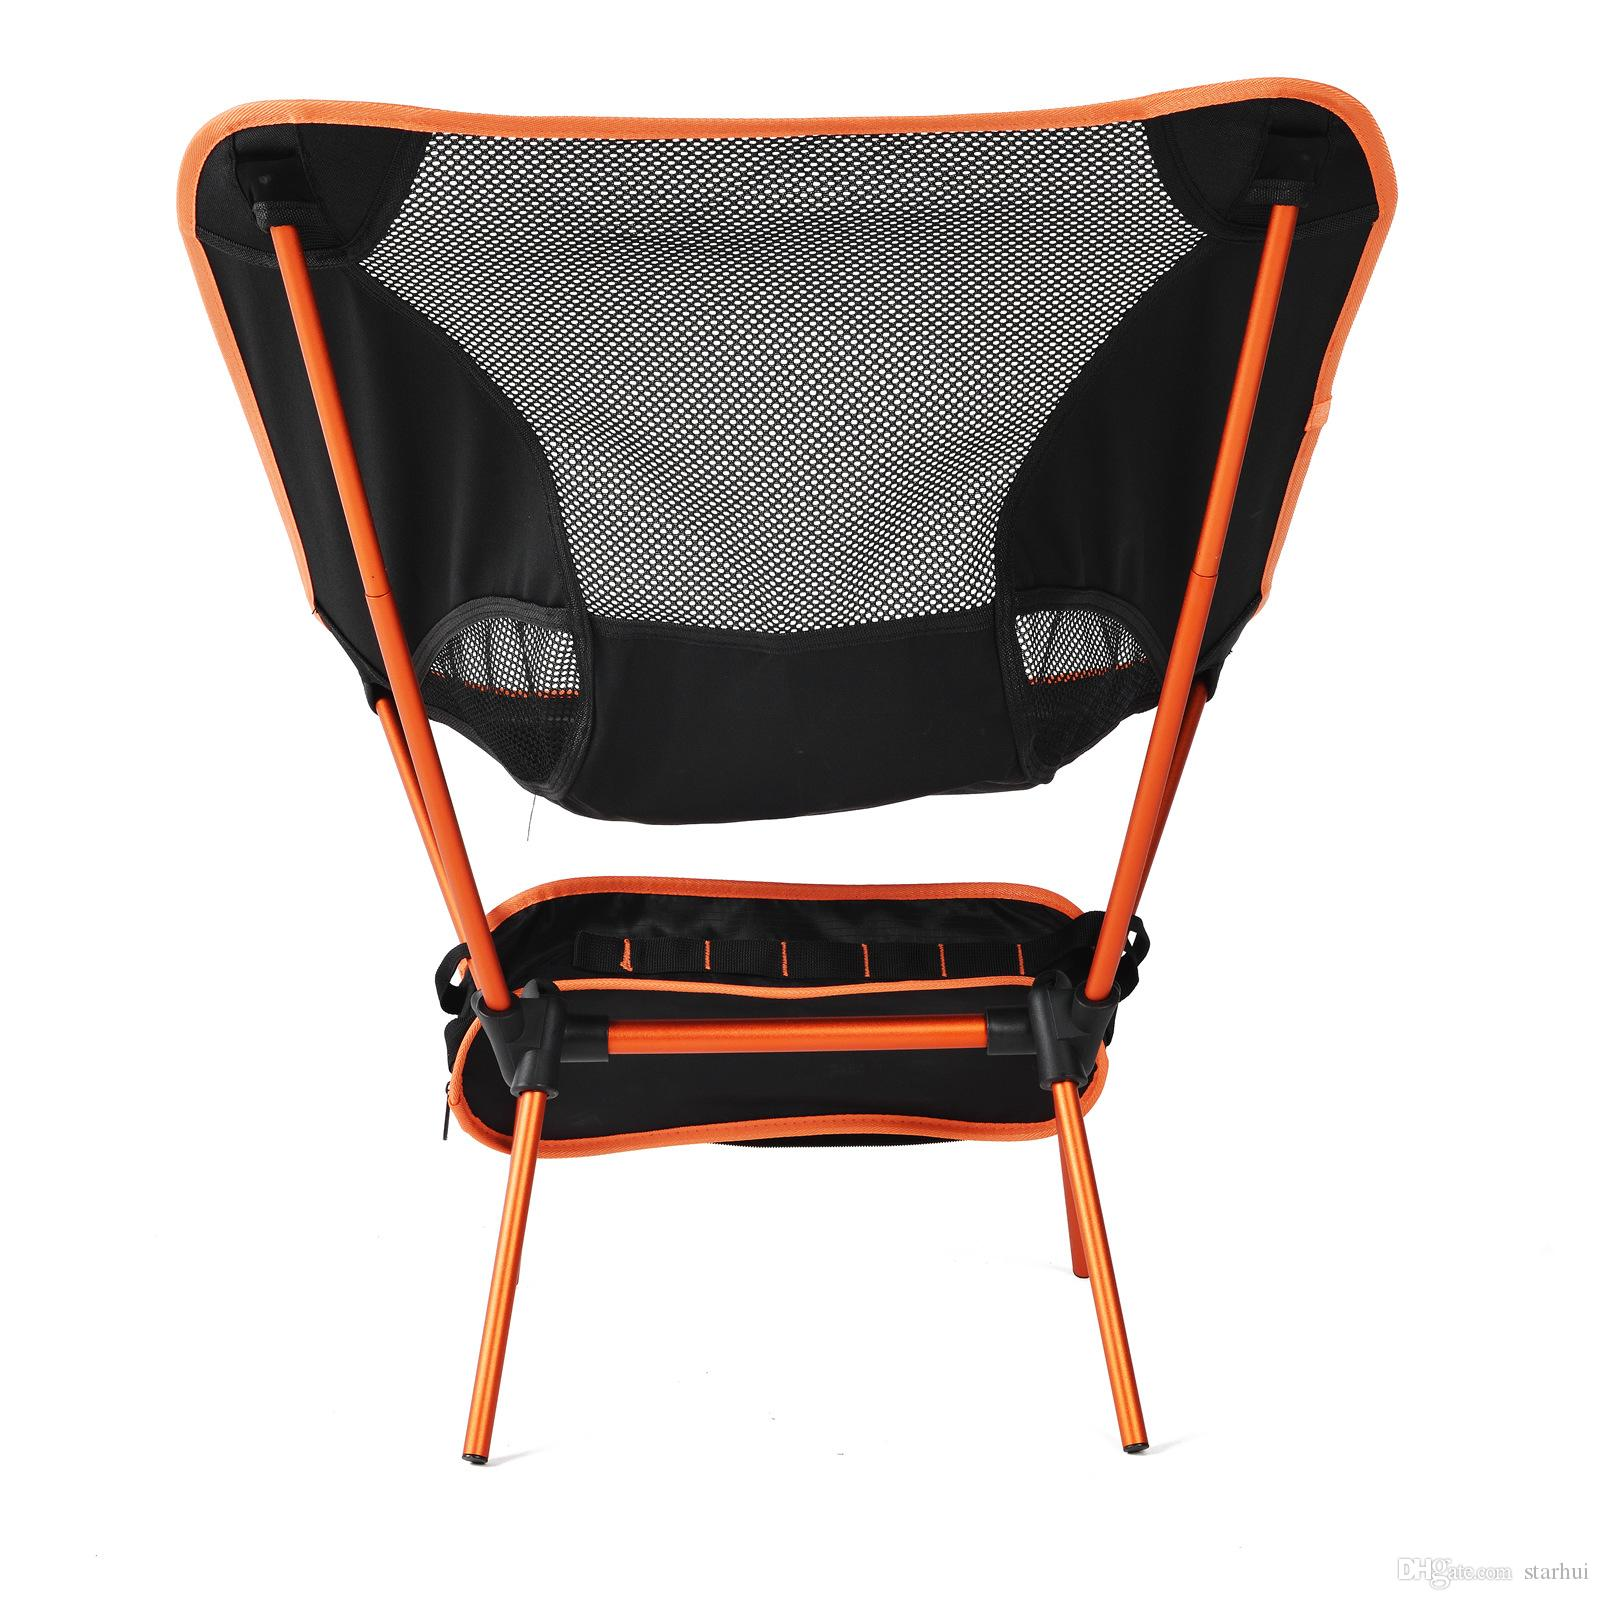 2019 Portable Folding Camping Backpack Chair Compact Heavy Duty Chairs For Hiking Picnic Beach Camp Backpacking Outdoor Festivals Wx9 660 From